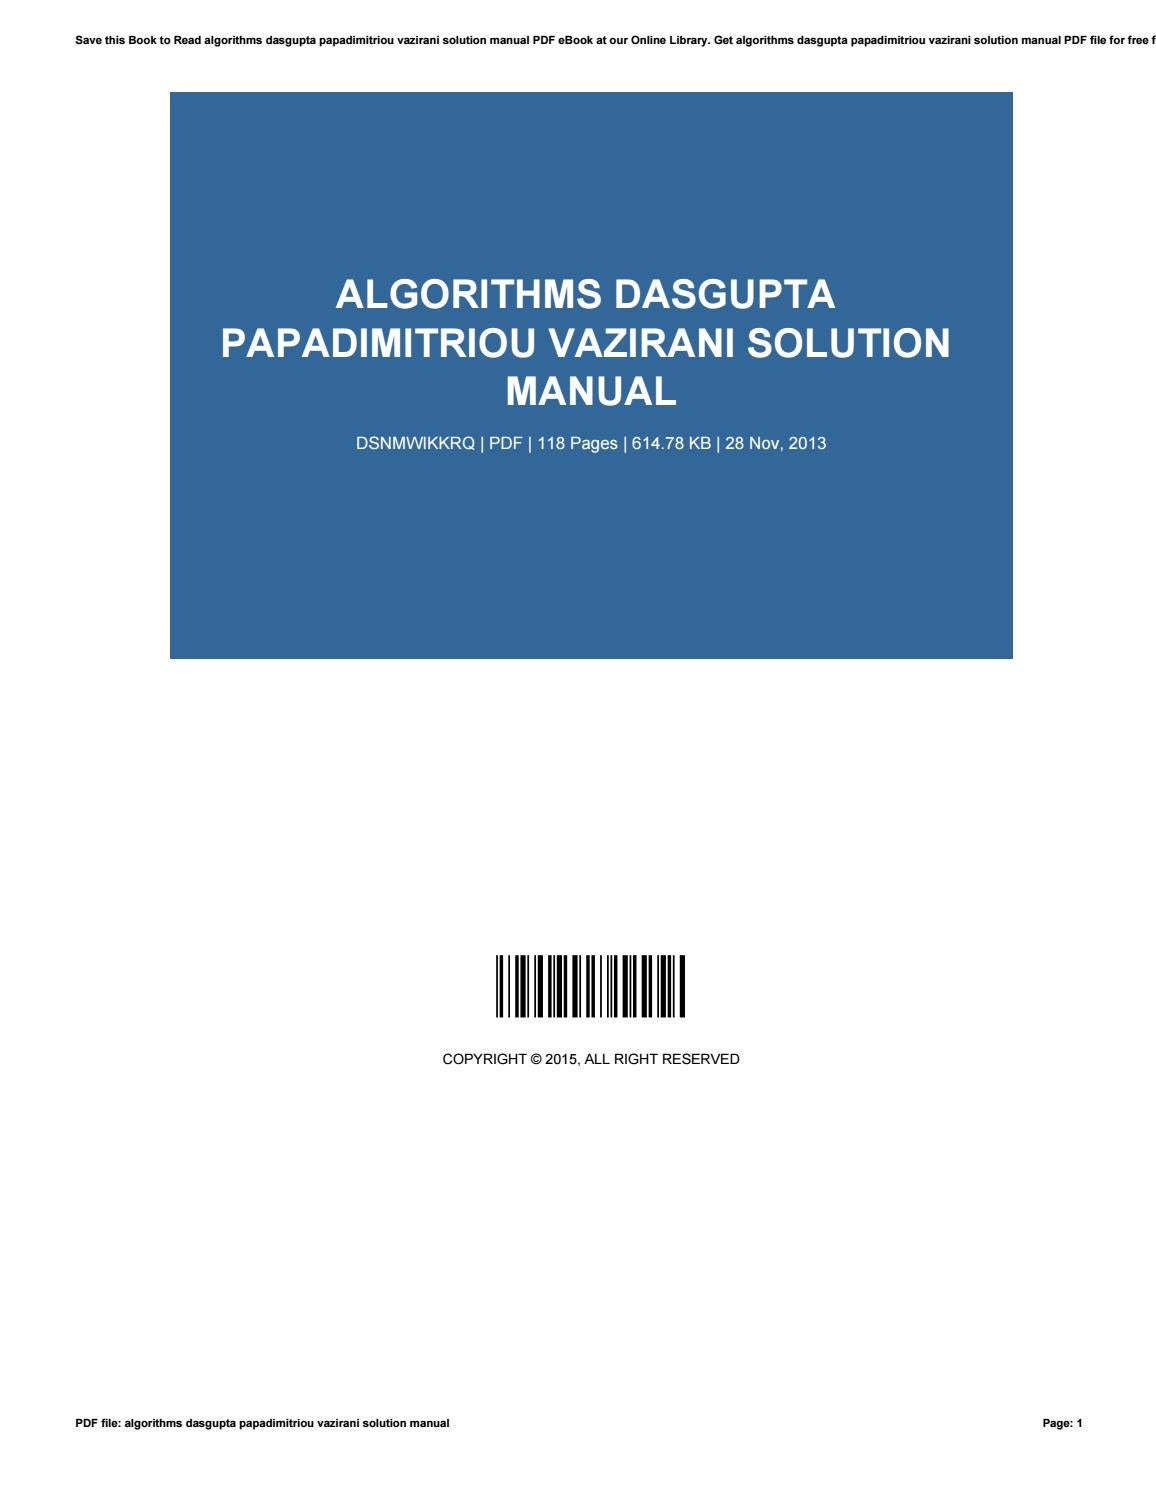 Algorithms dasgupta papadimitriou vazirani solution manual by  KristopherAhlstrom2093 - issuu